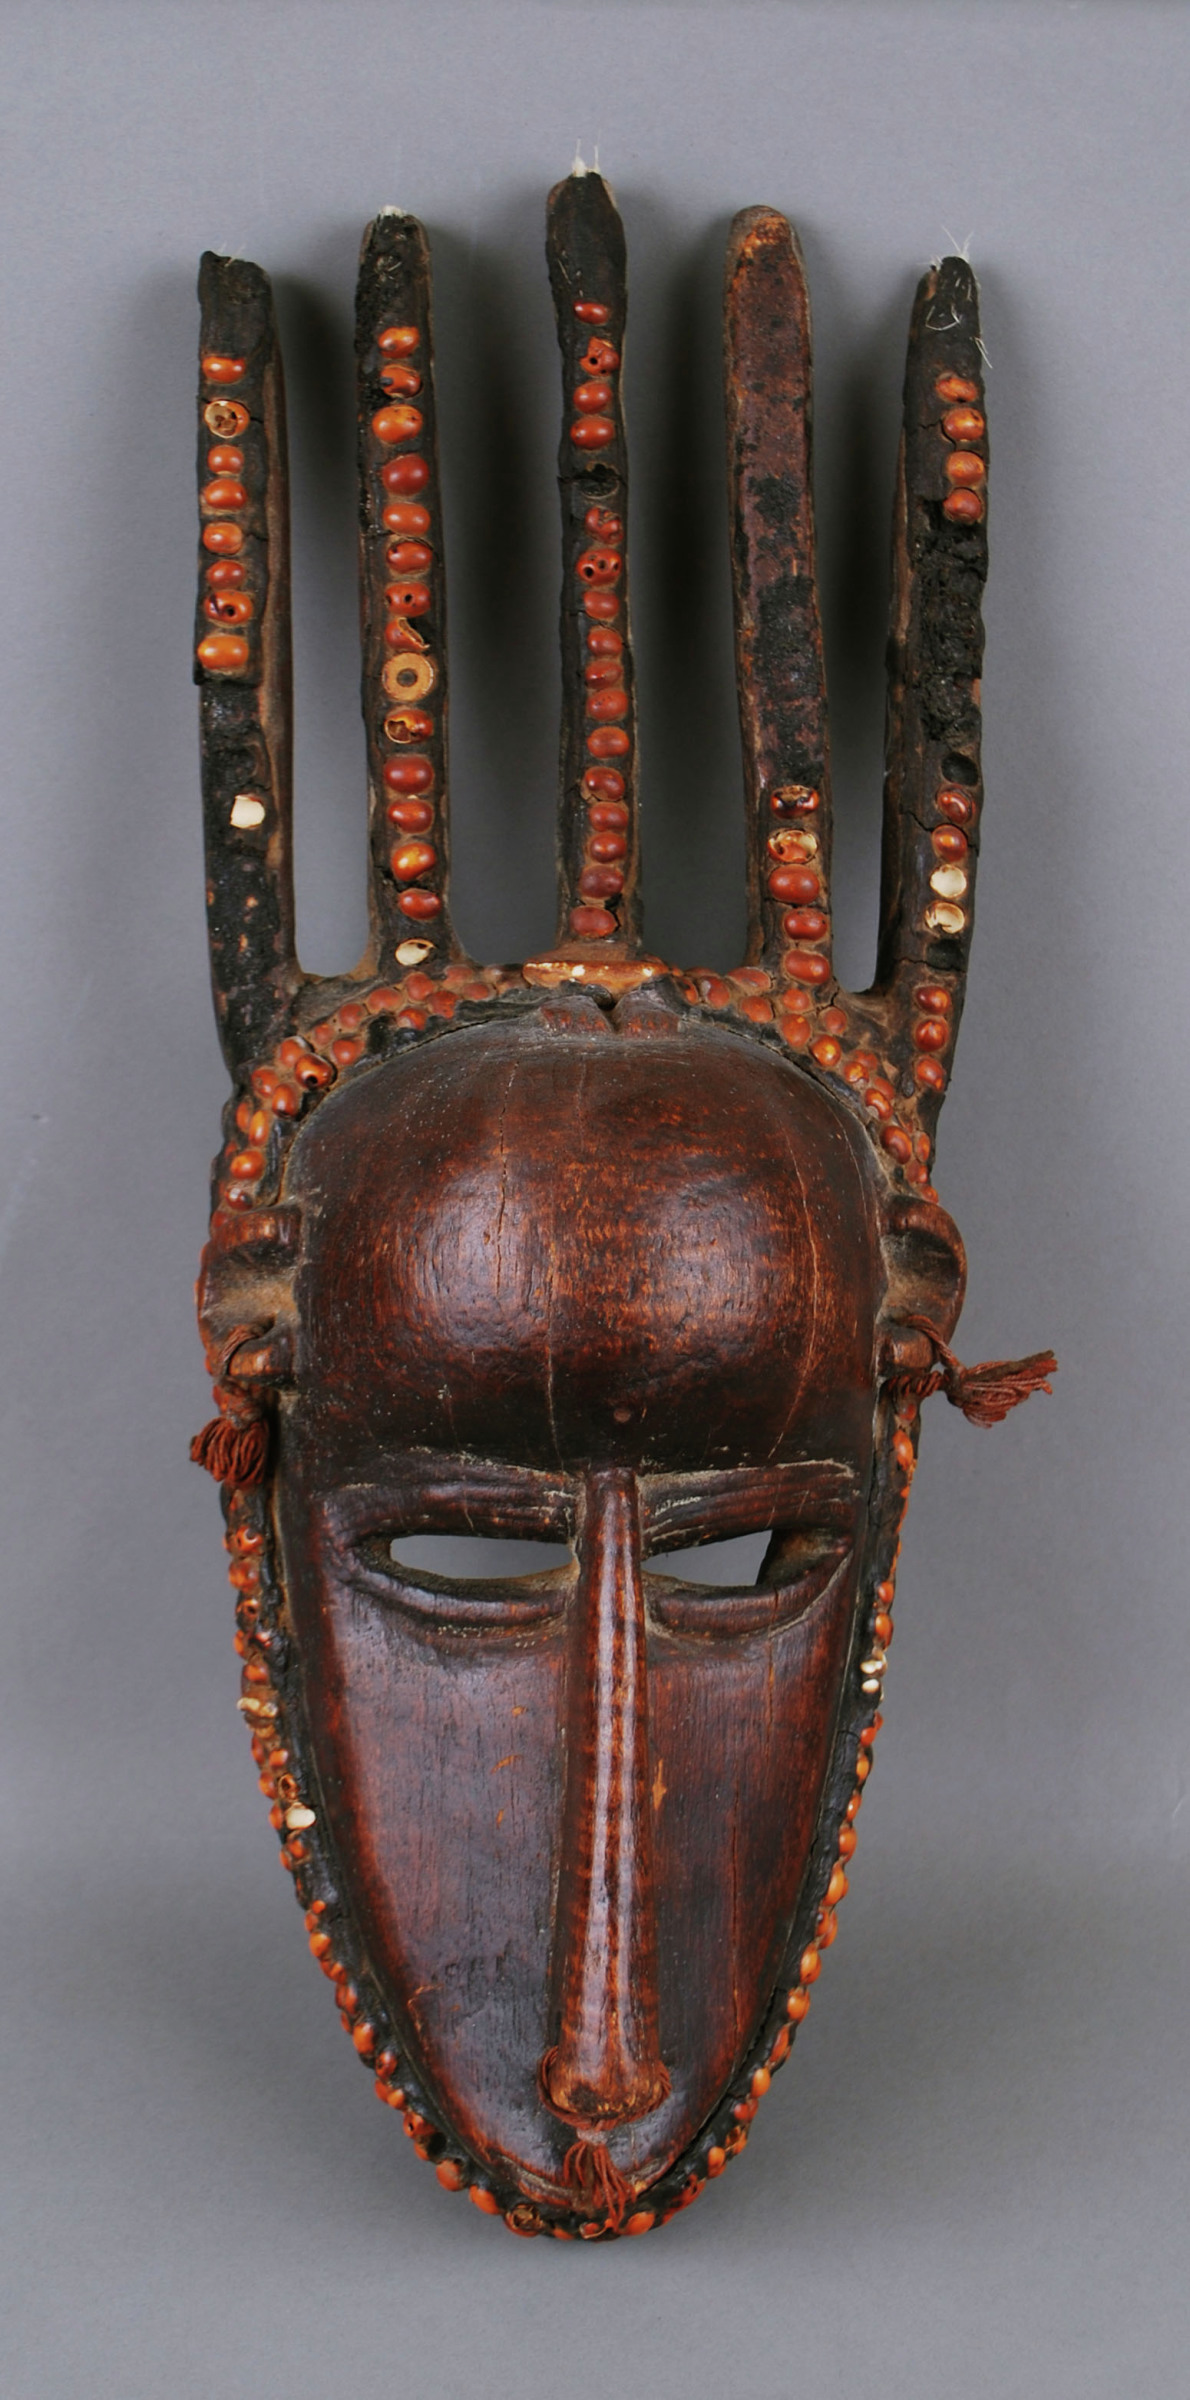 Mask (ntomo), Bamana people, Mali, African, wood, horn, pitch, seed, cowrie shell